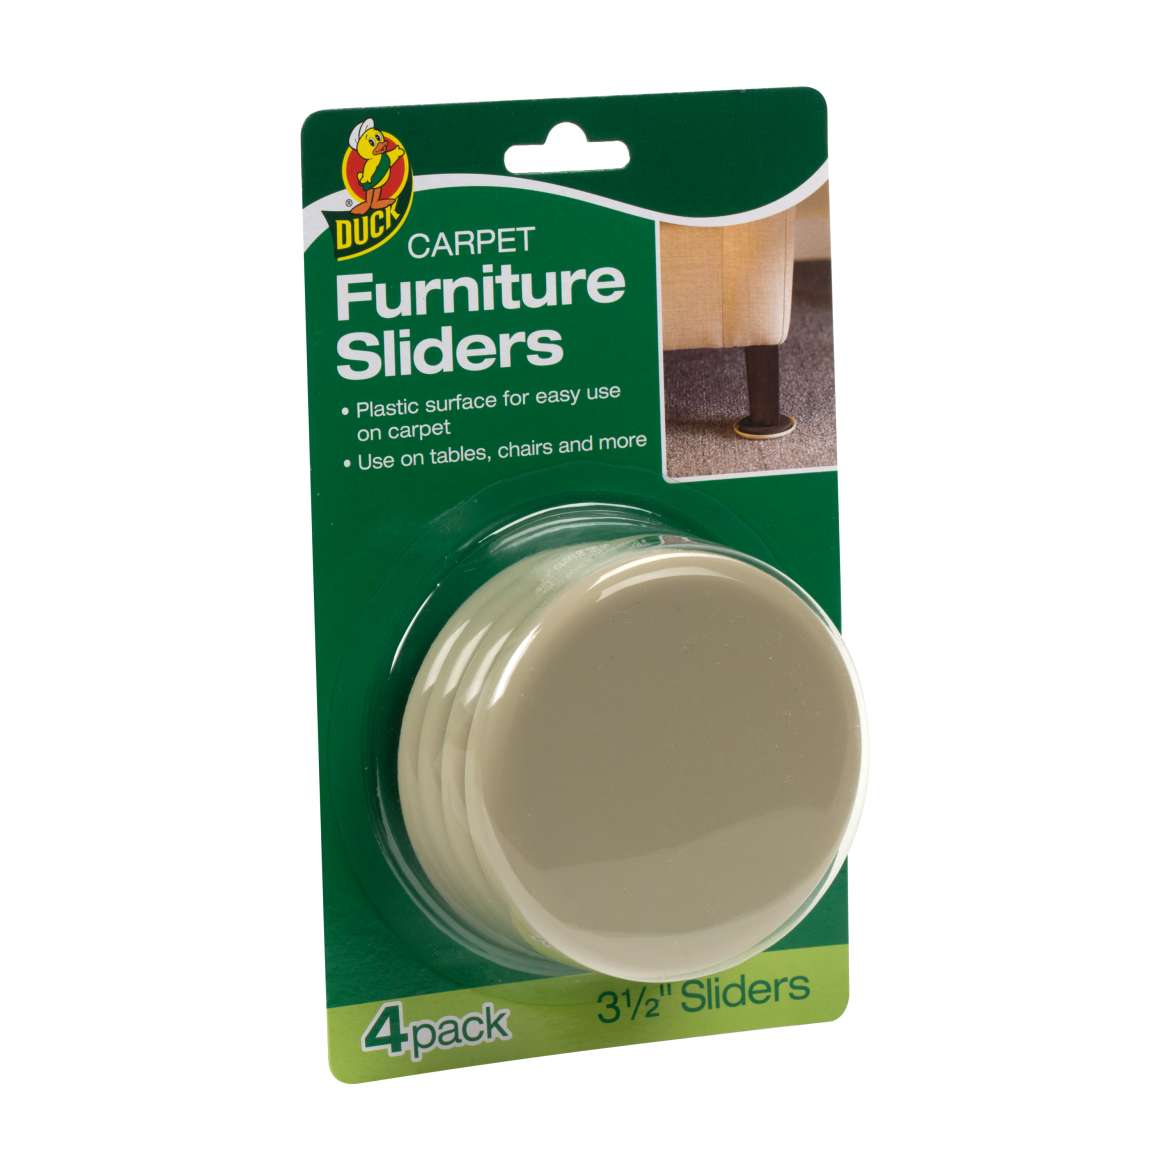 Duck® Brand Plastic Carpet Furniture Sliders - Brown, 3.5 in. Image